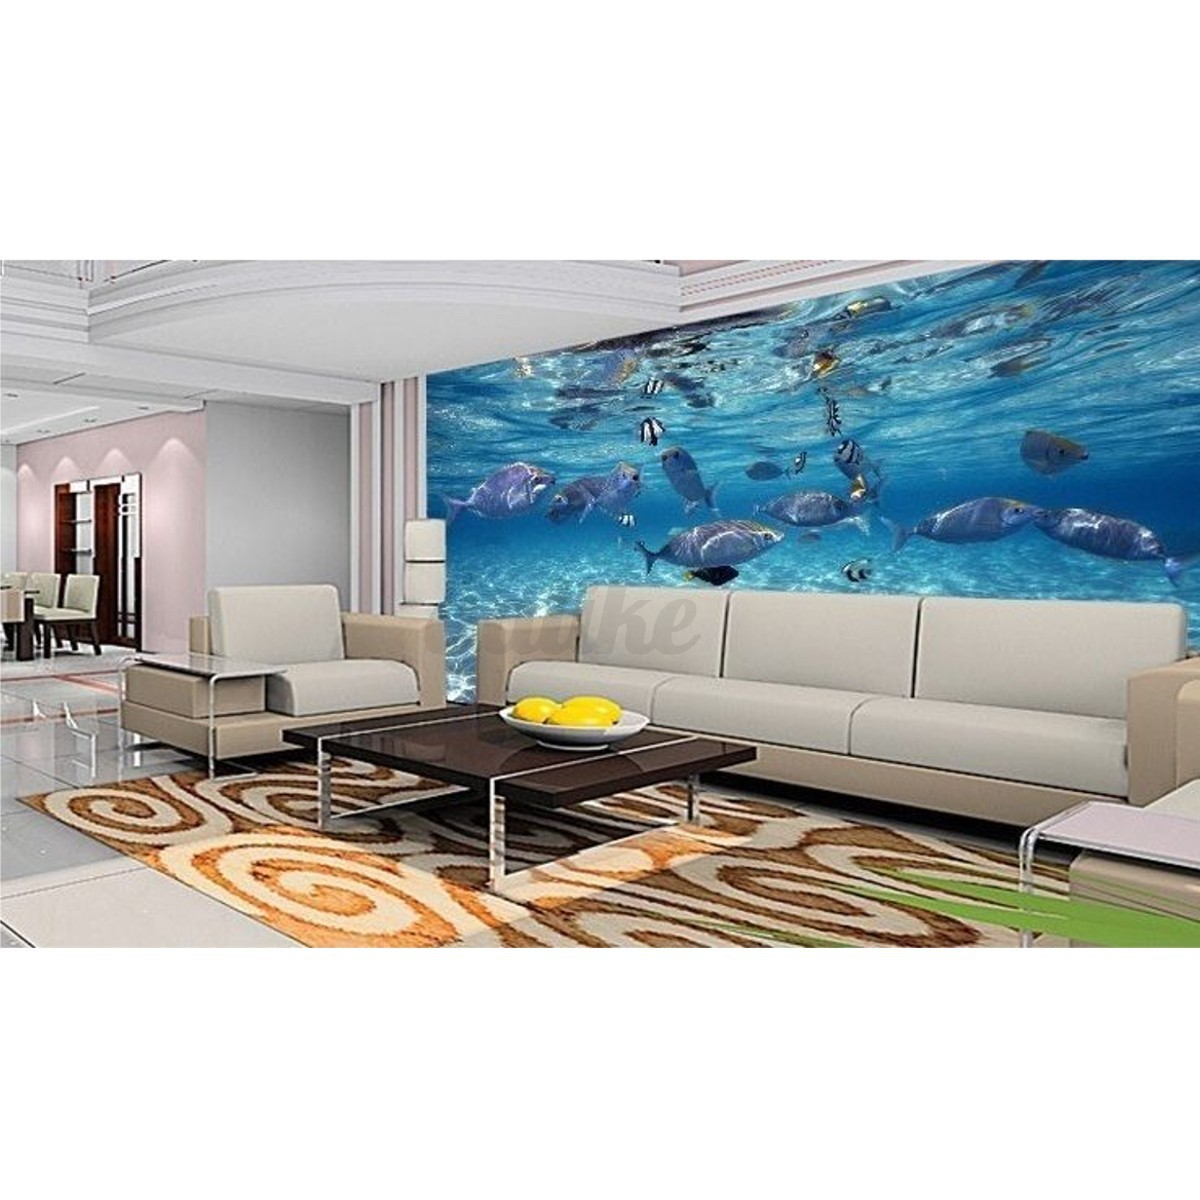 3d wallpaper bedroom mural roll modern luxury sea world for Best 3d wallpaper for bedroom